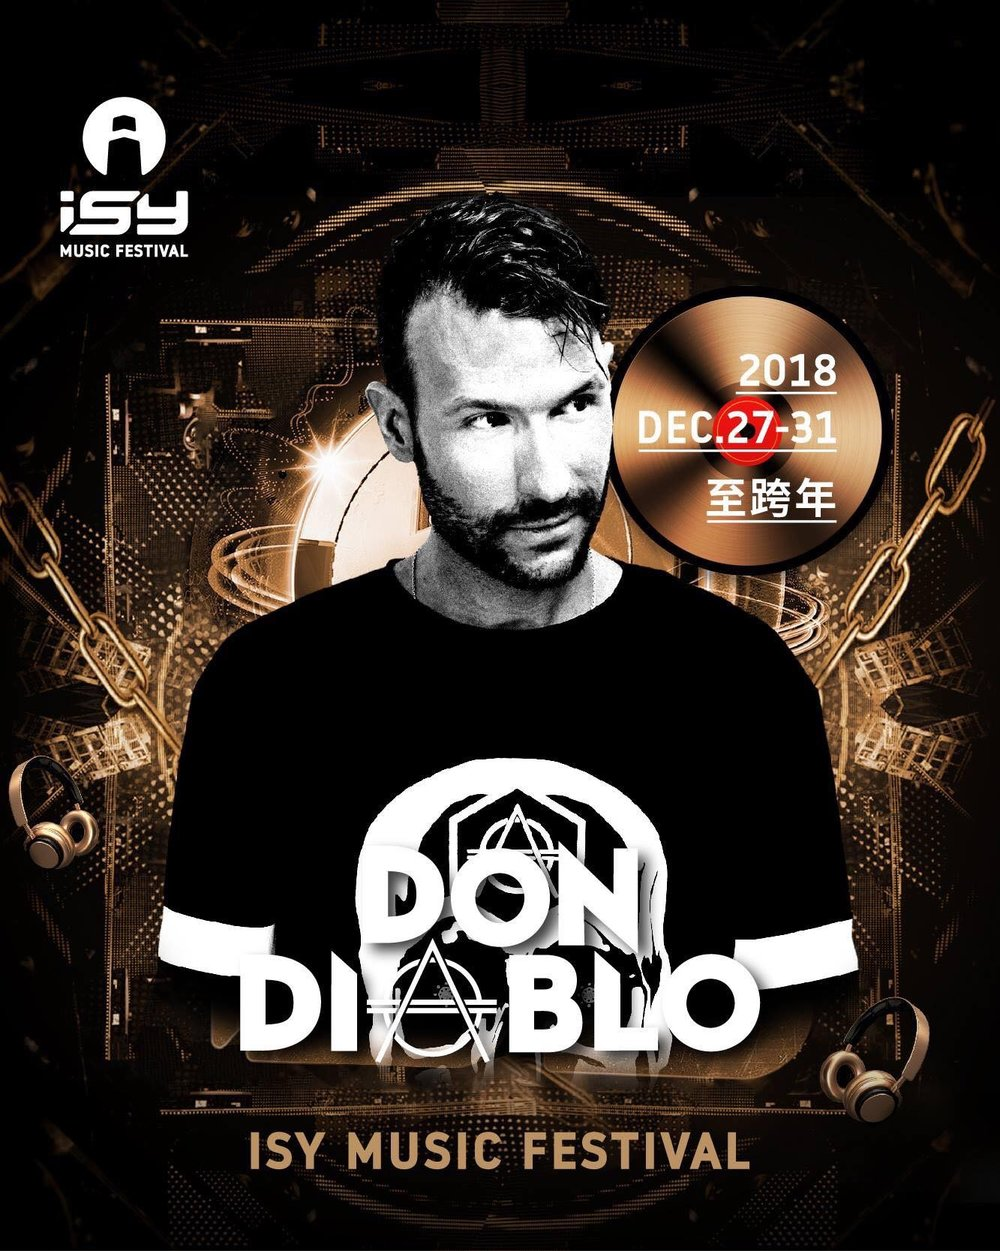 Don Diablo - is a Dutch DJ, record producer, musician and songwriter of electronic dance music from Coevorden. He is known for his electronic style of production and vocalizing in most of his songs. He is one of the pioneers of the future house genre and was ranked 7th in the Top 100 DJs – 2018 list by DJ Mag. He was also ranked #1 Producer of the Year by 1001 Tracklists. In 2016 he was ranked the number one Future House Artist of the Year on Beatport.